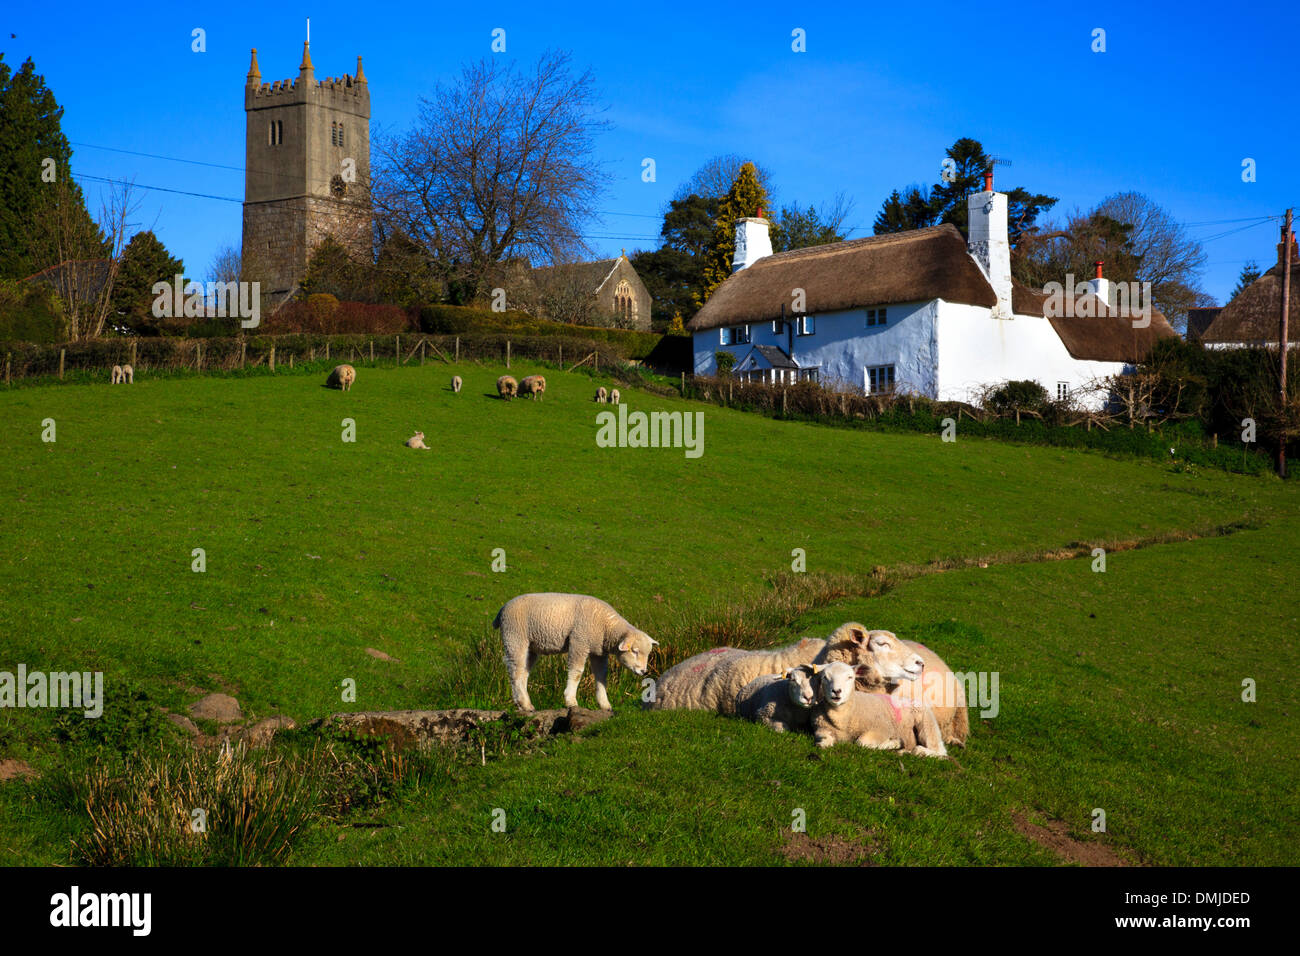 North Bovey village, Dartmoor National Park, Devon, UK - Stock Image